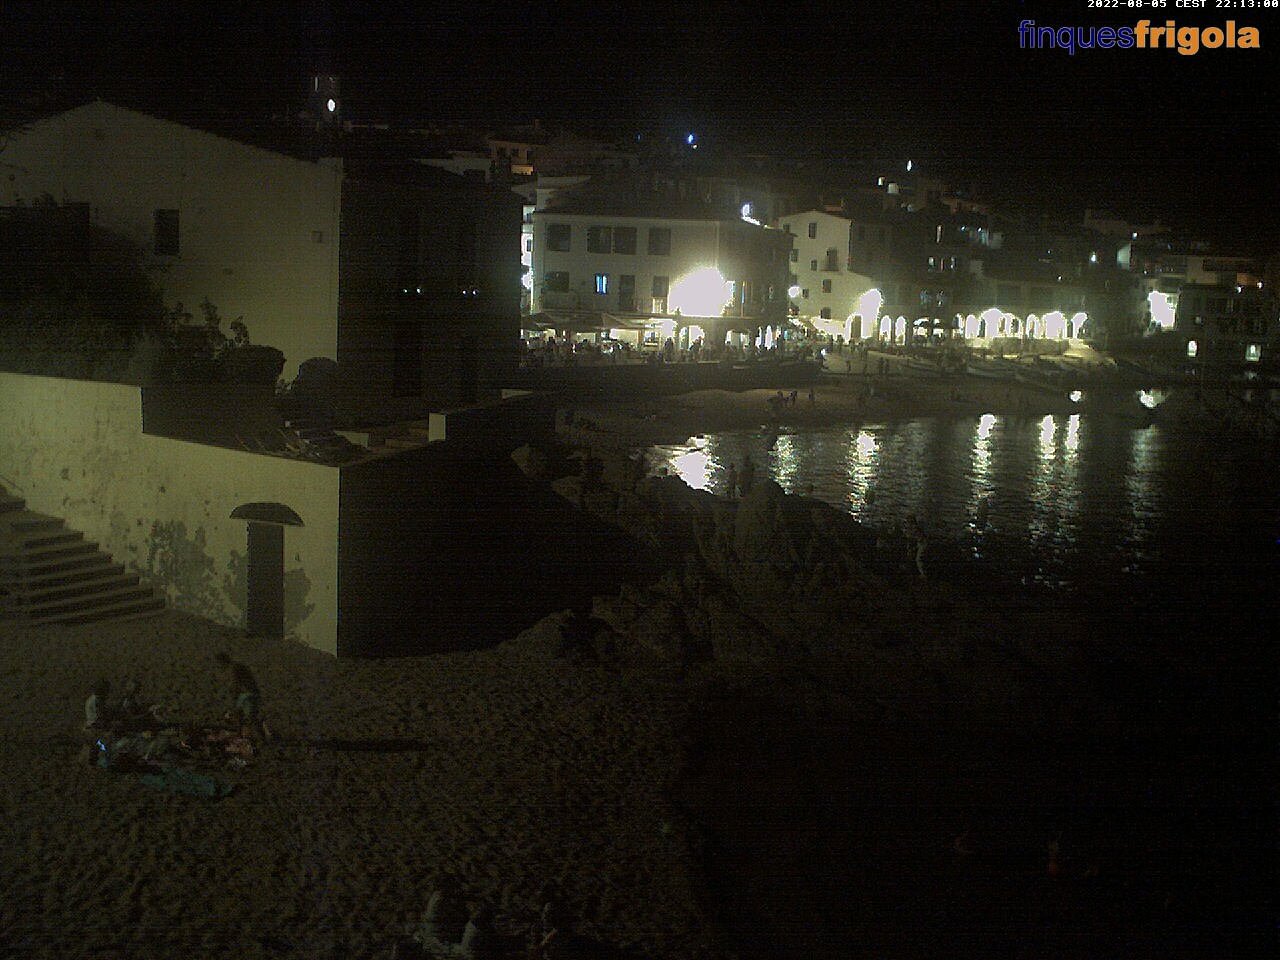 Webcam: Costa Brava, Andorra